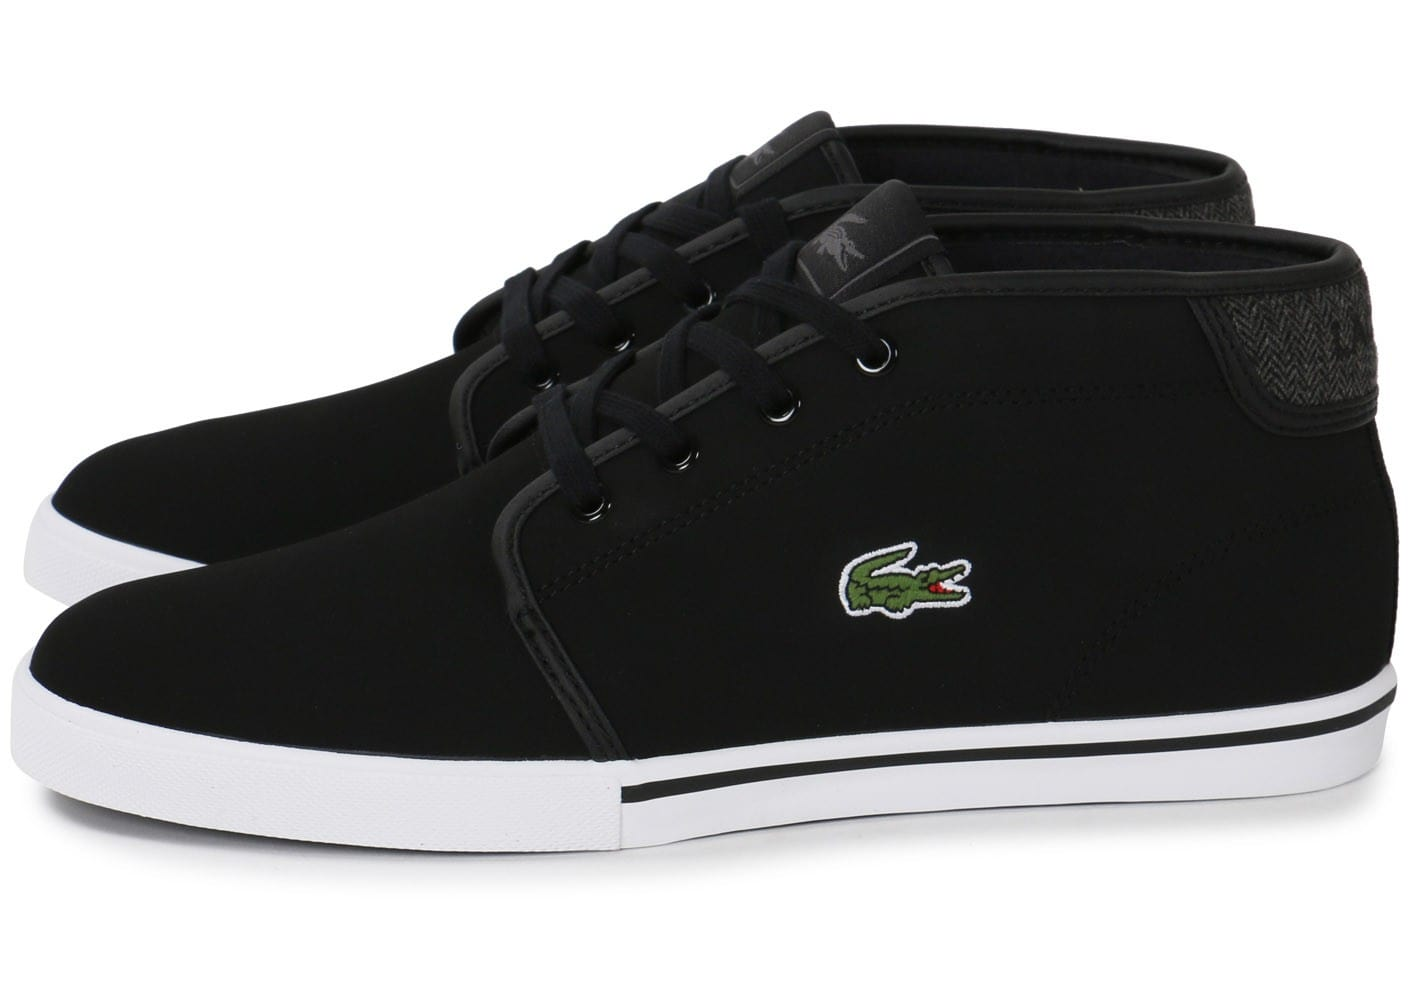 b82419cf4e chaussure lacoste ampthill,Homme Baskets Montantes Lacoste Chaussure ...